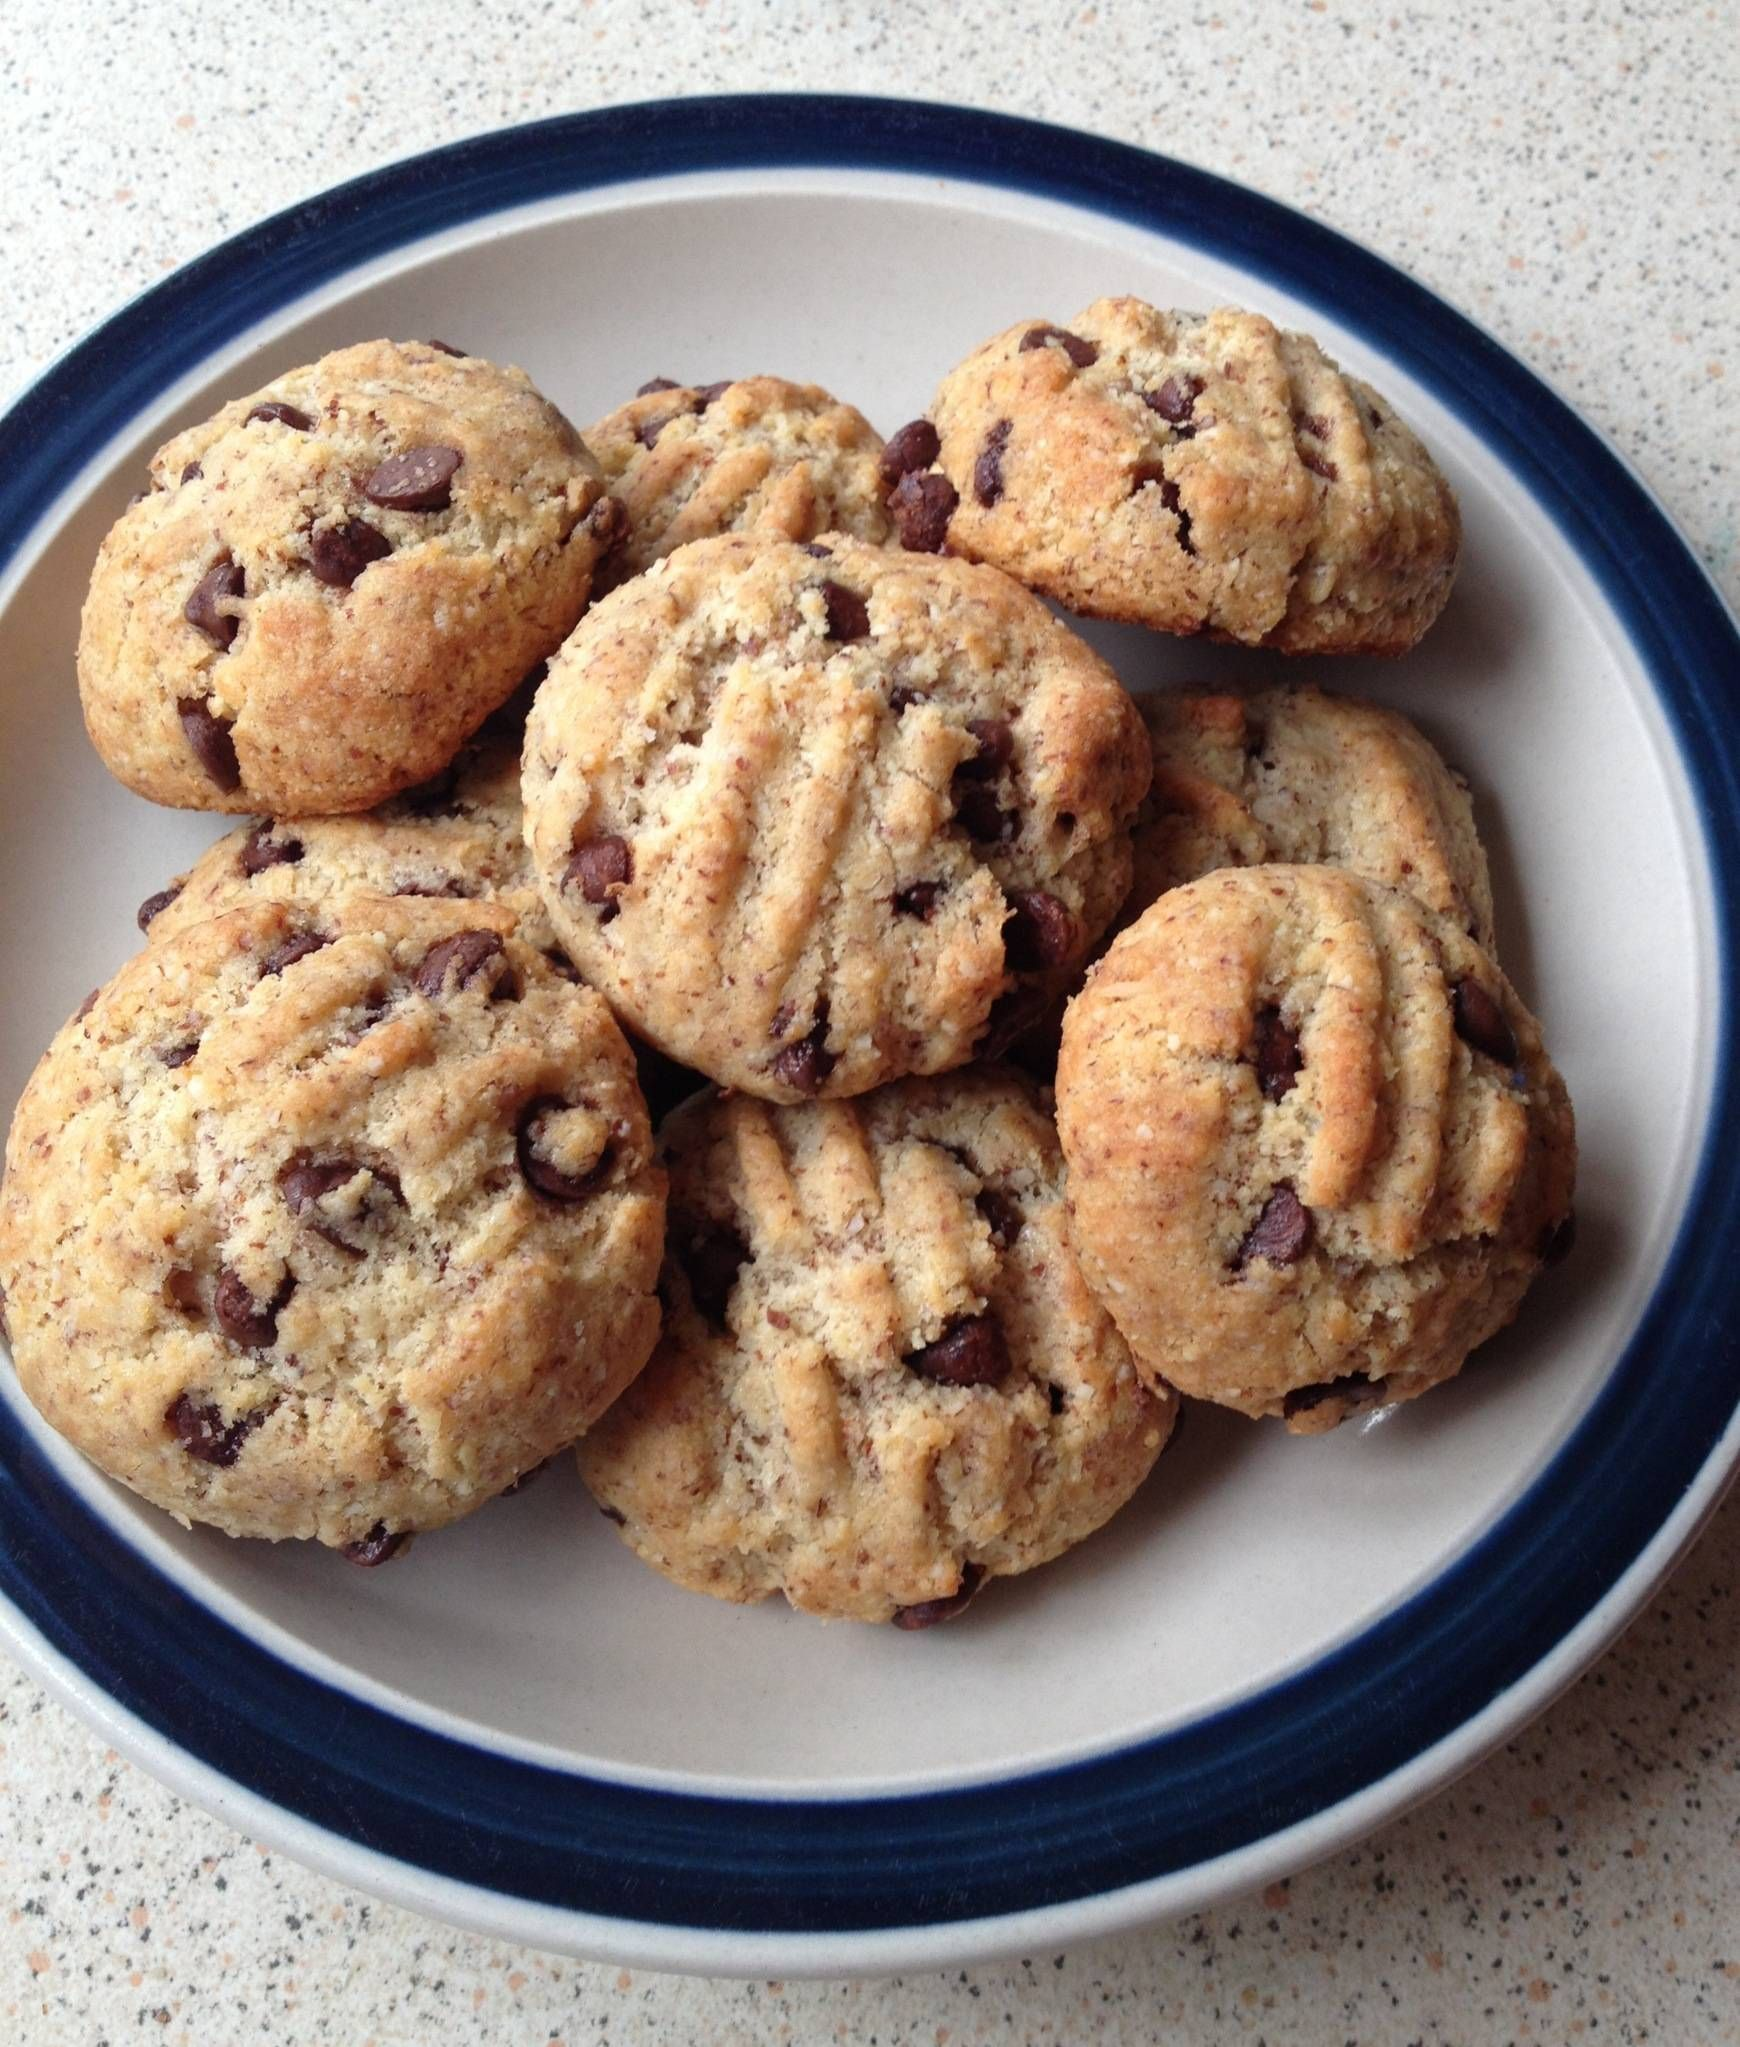 Perfected And Incredible! Chocolate Chip Cookie Recipe (w